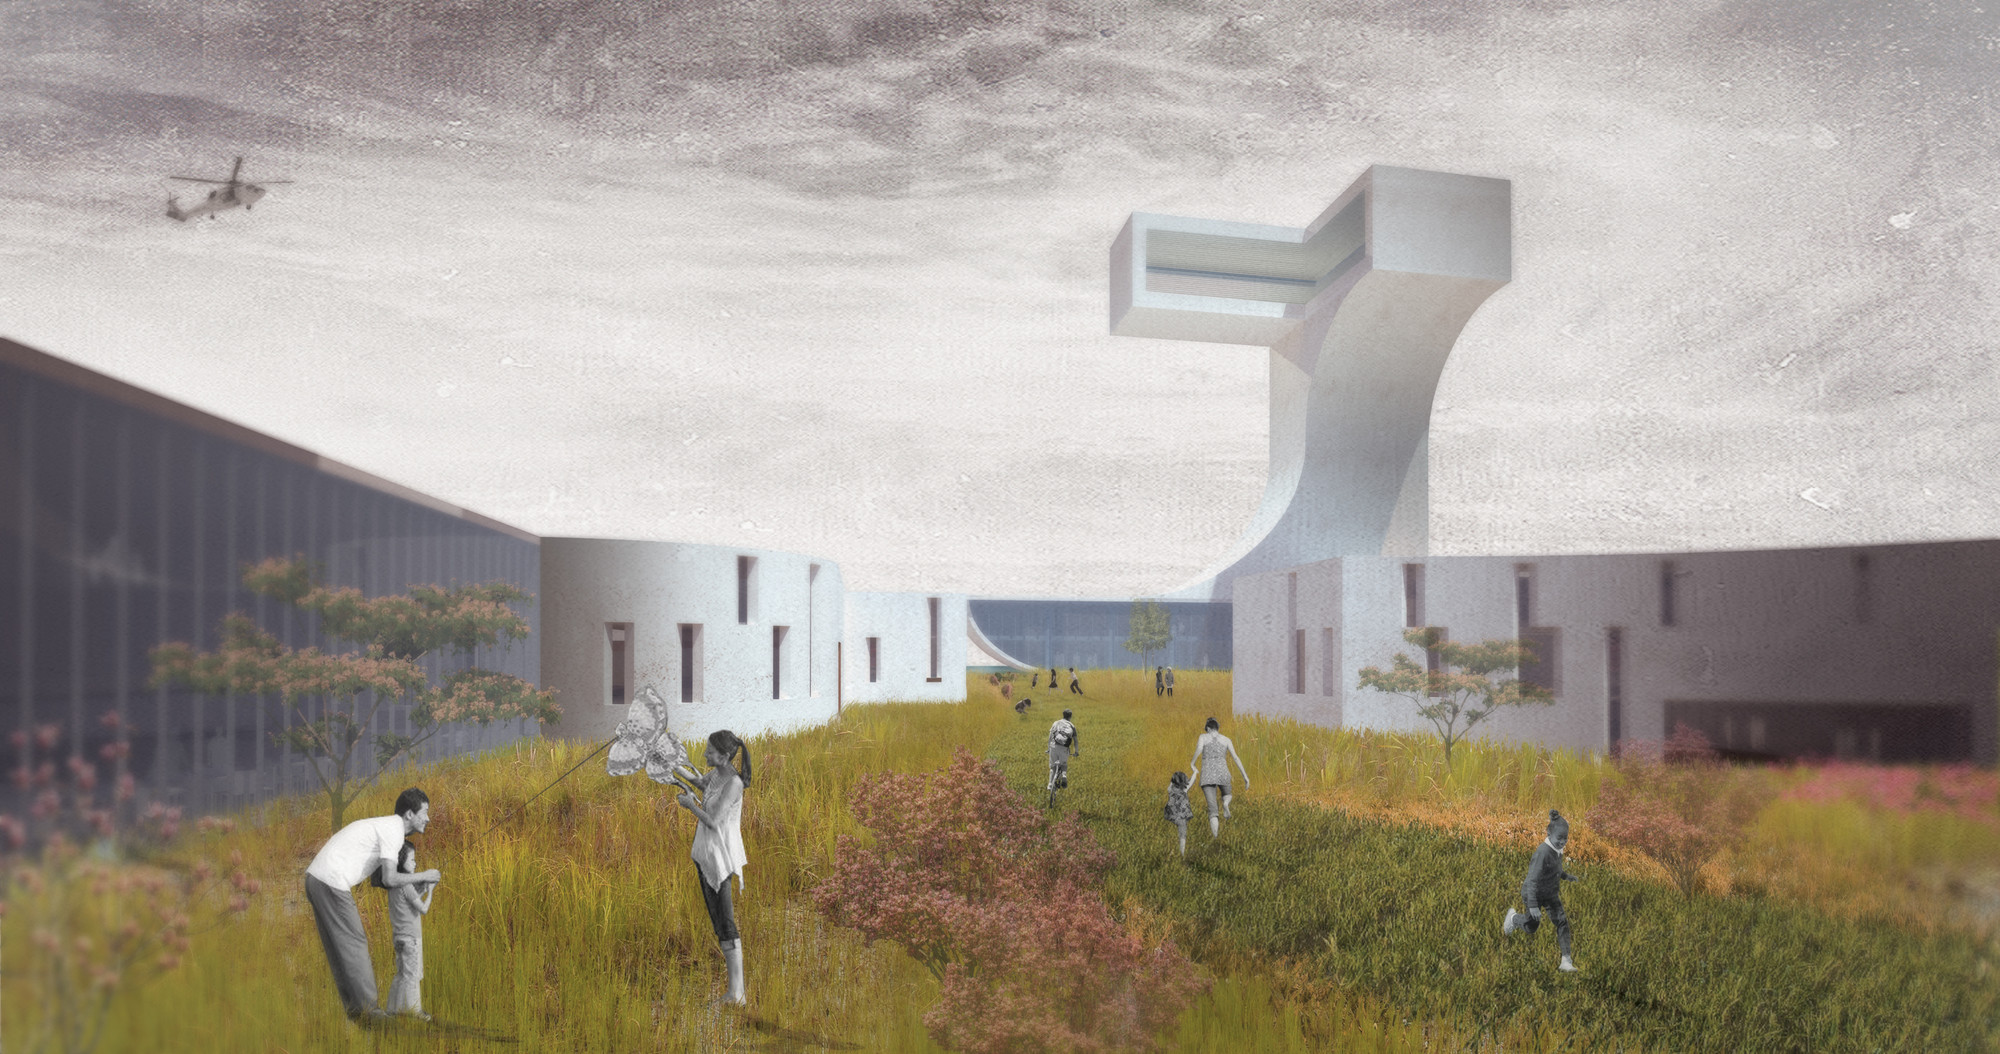 San Francisco Fire Department Headquarters Proposal  / The Open Workshop, Courtesy of The Open Workshop